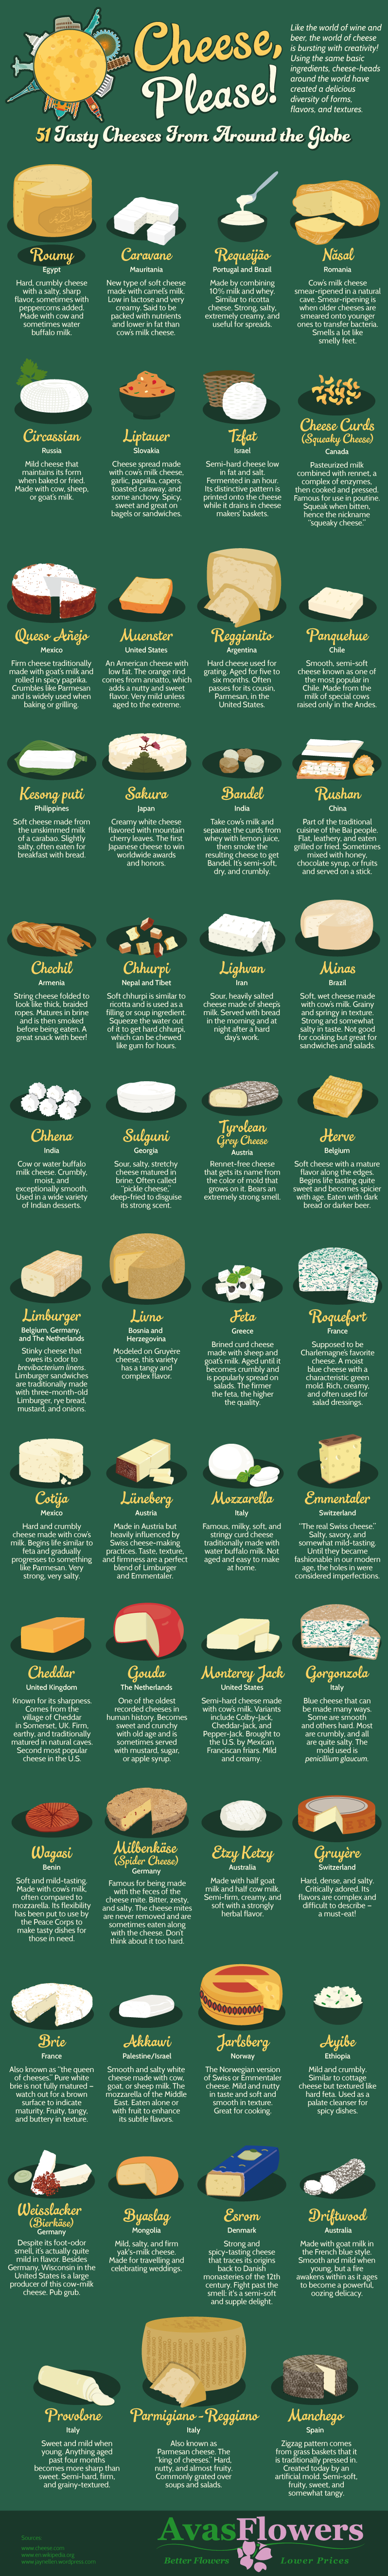 Cheese, Please! 51 Tasty Cheeses From Around the Globe